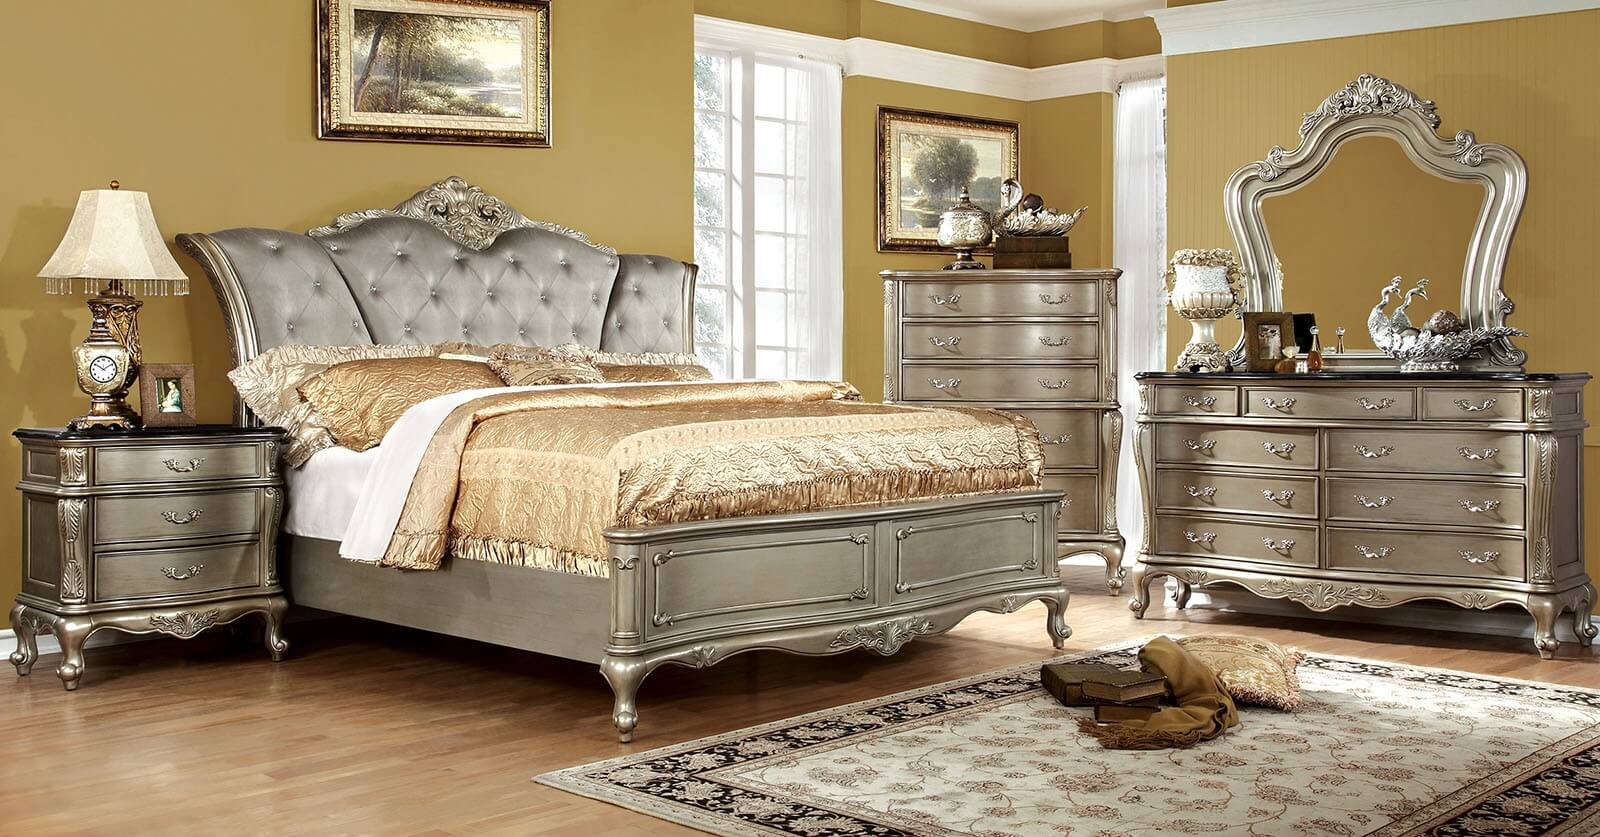 Ohara bedroom set by furniture of america Bedrooms furniture